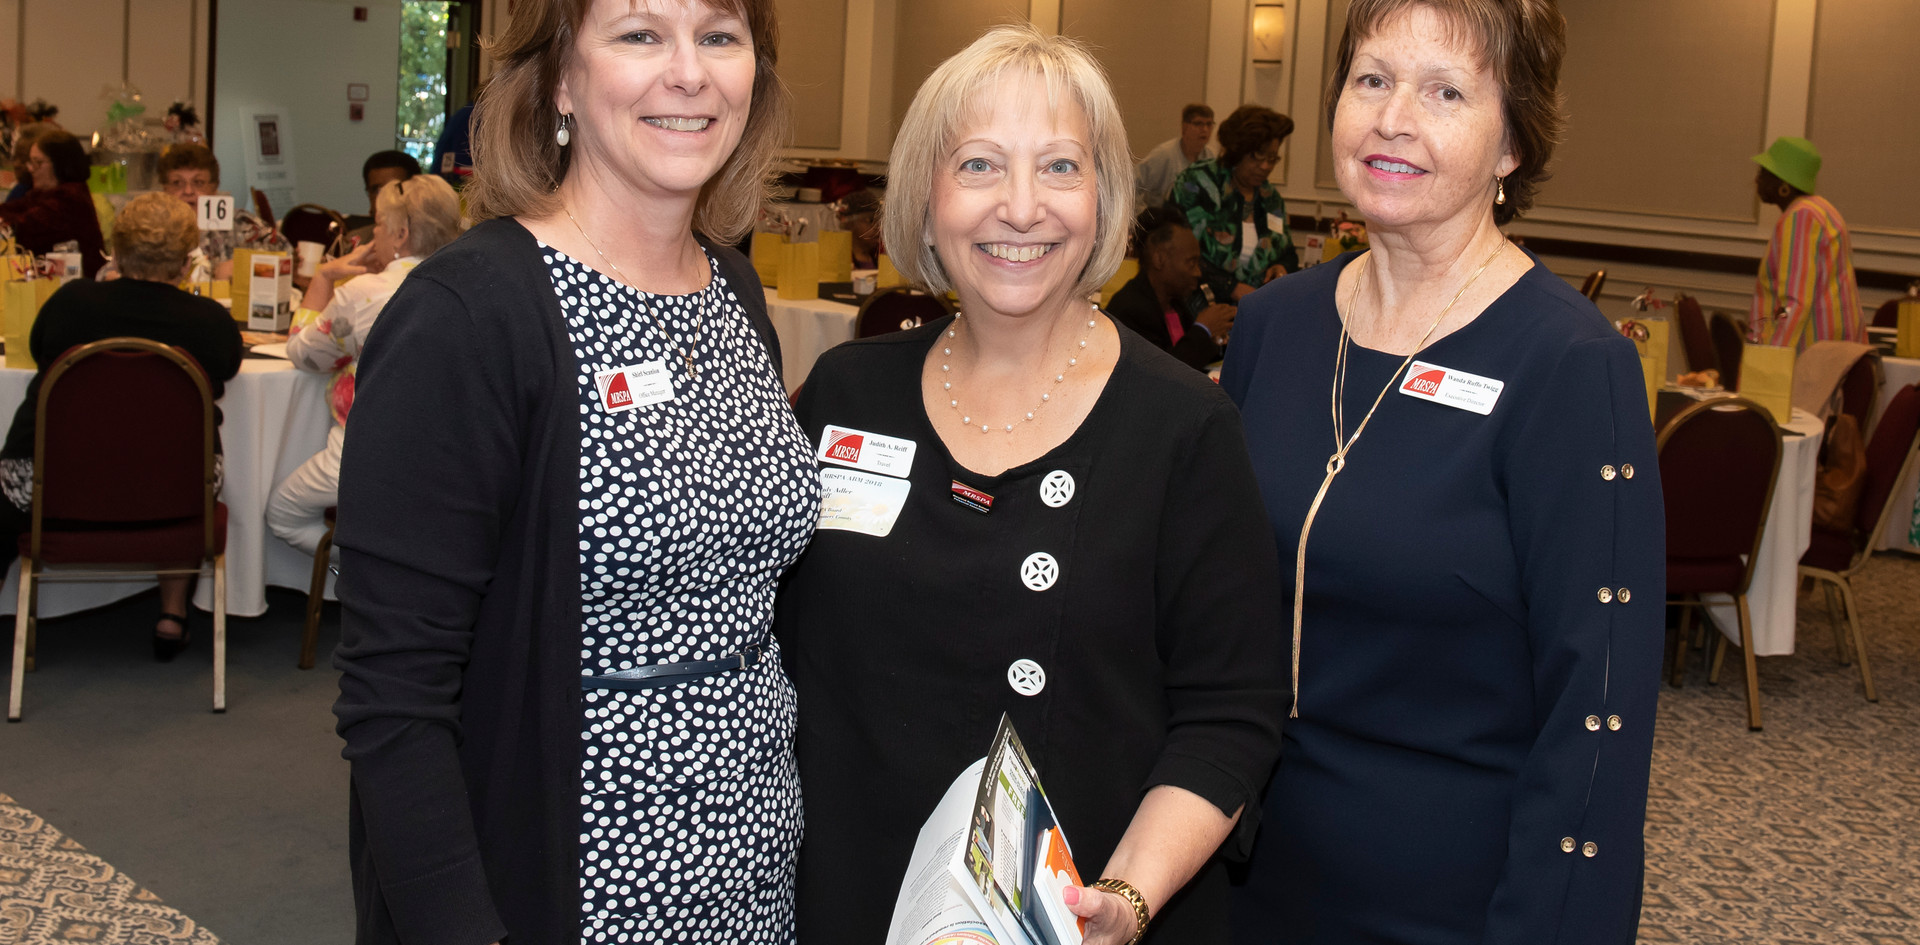 Office Manager Shirl Scanlon, Travel Chair Judy Adler Reiff, and Executive Director Wanda Twigg